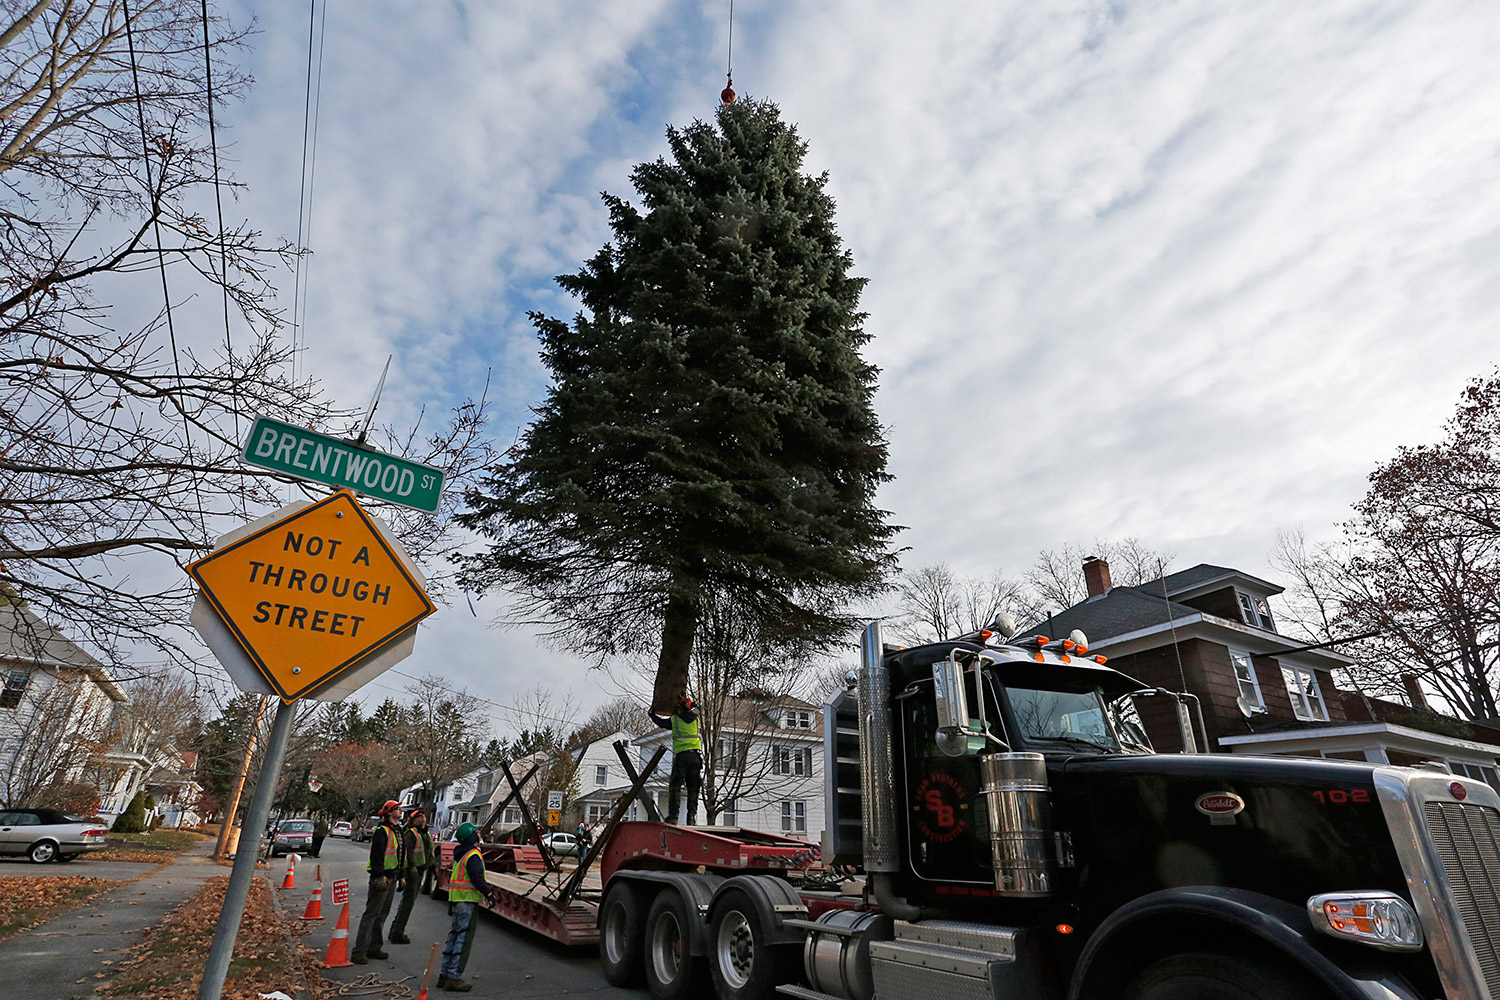 After 50 Years On Brentwood Street, Blue Spruce Stands Out